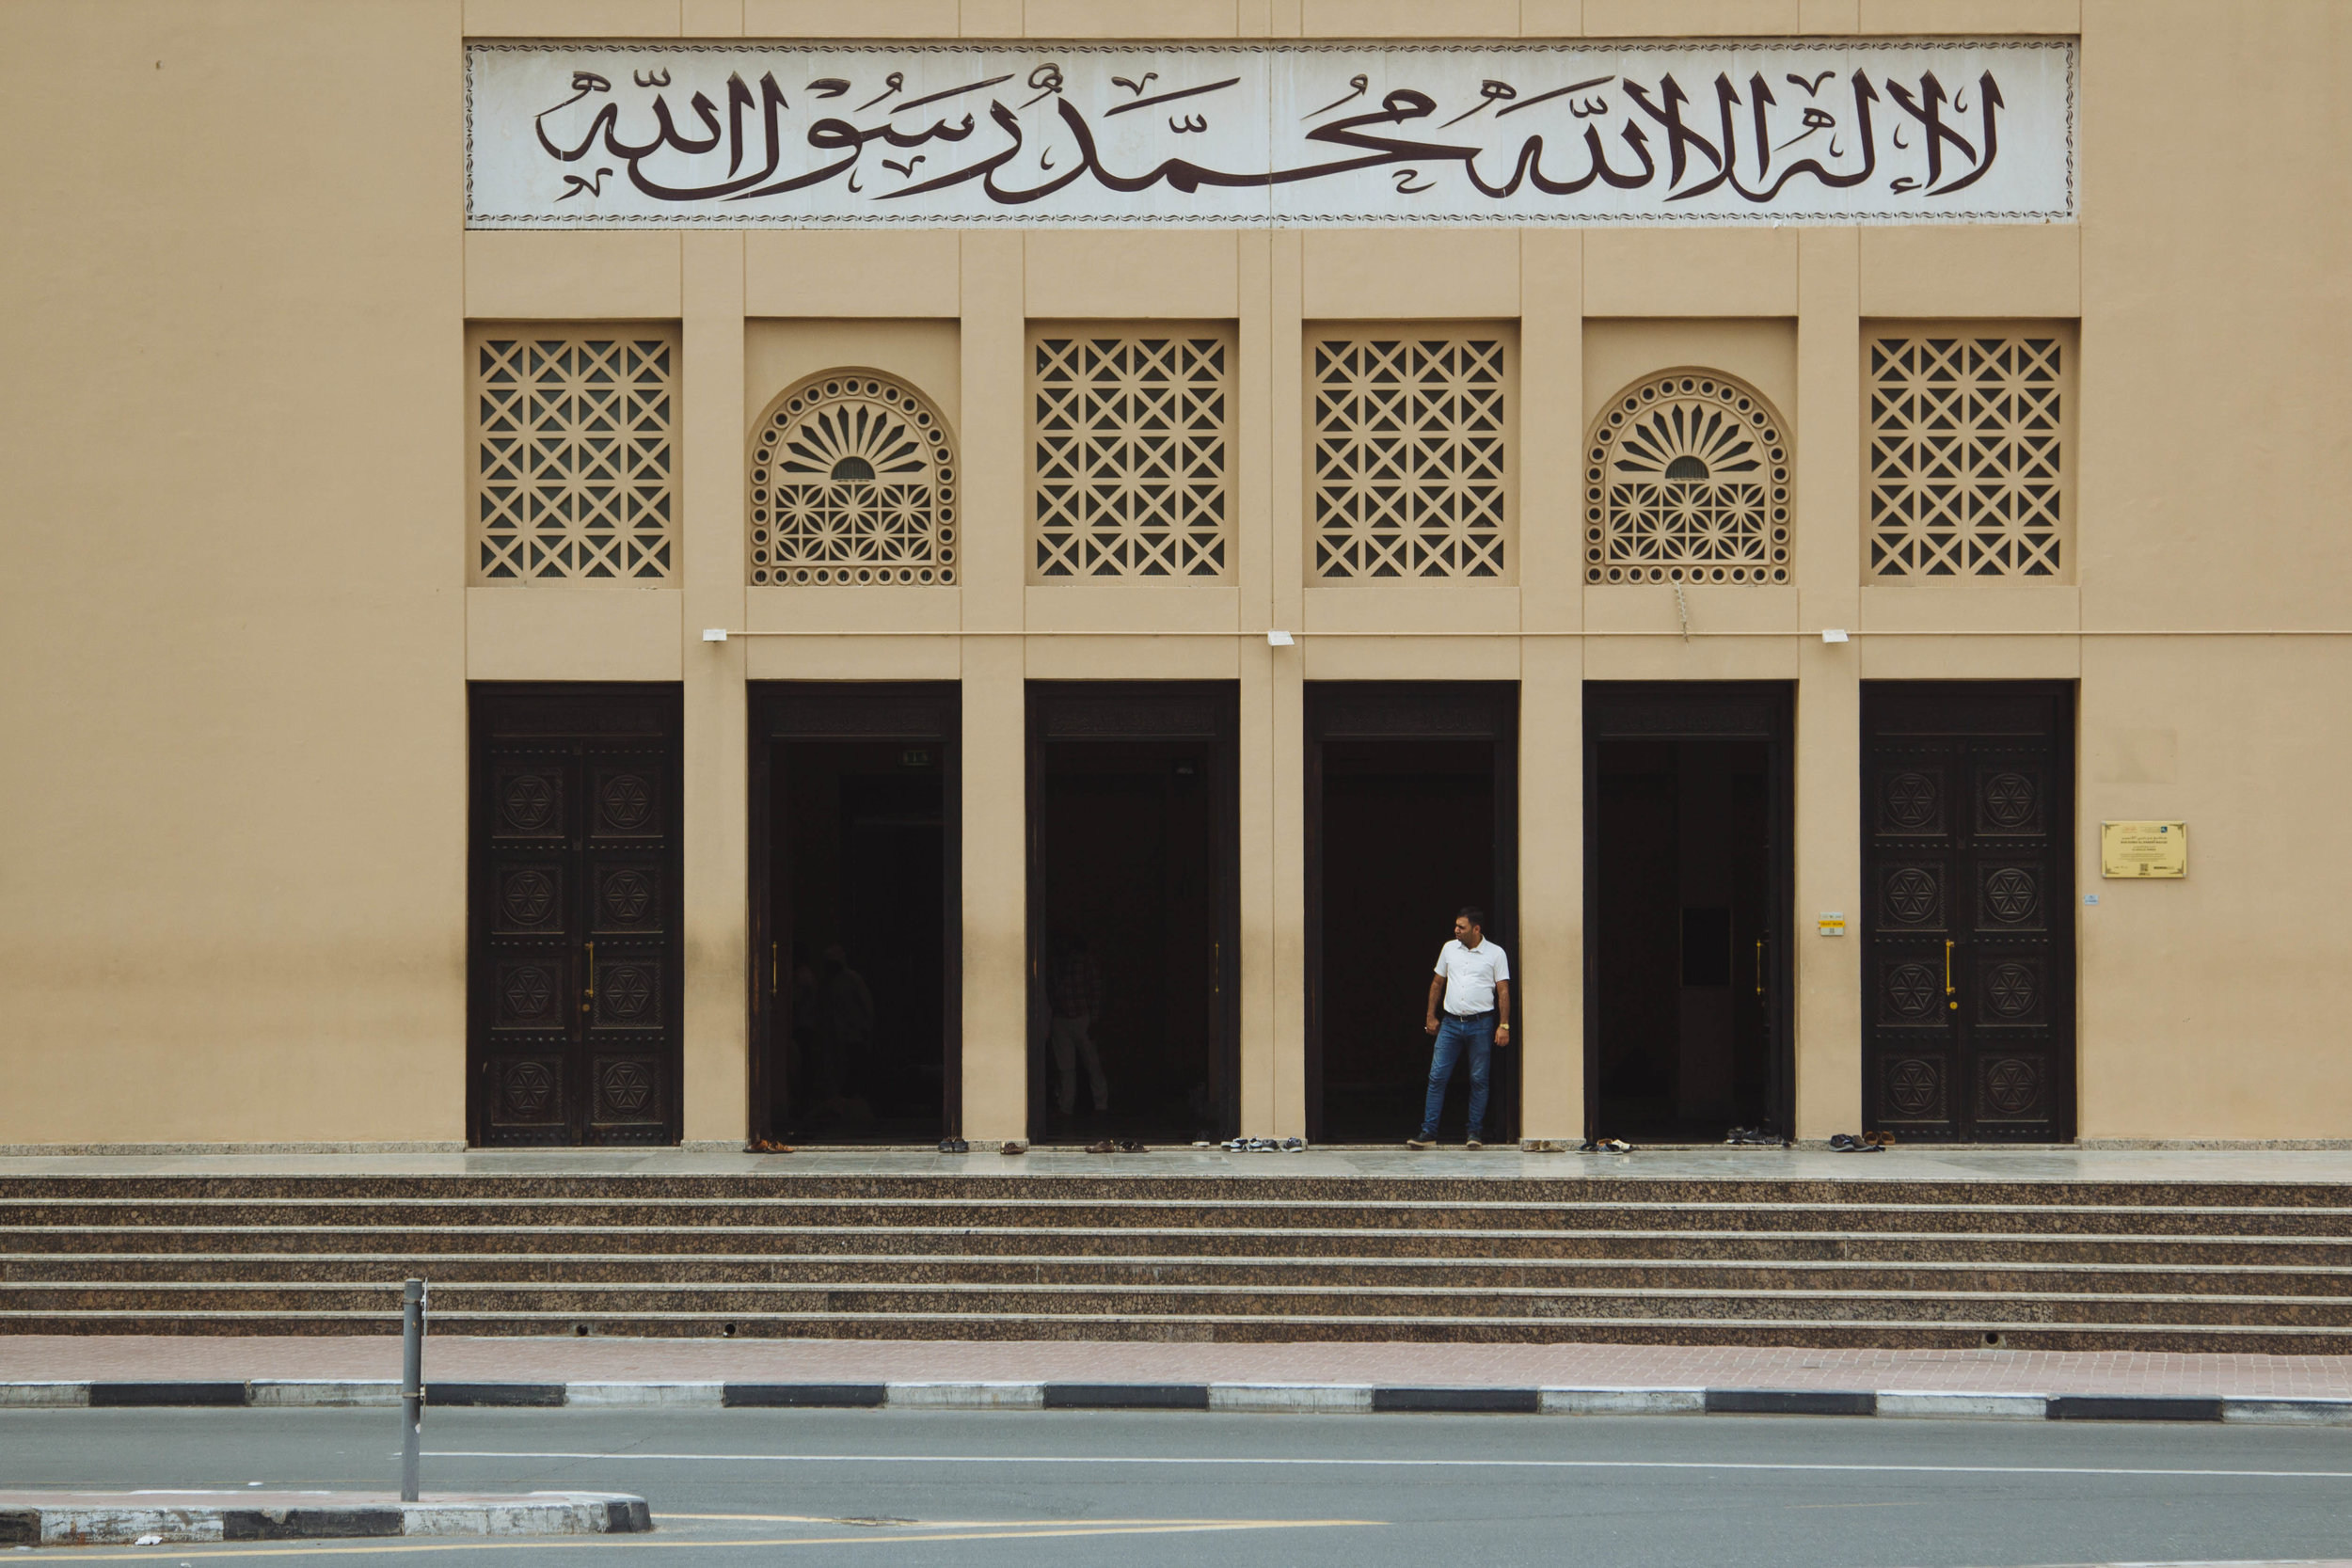 Grand Bur Masjid. If you look closely you can see worshippers' shoes by the entrance doors.